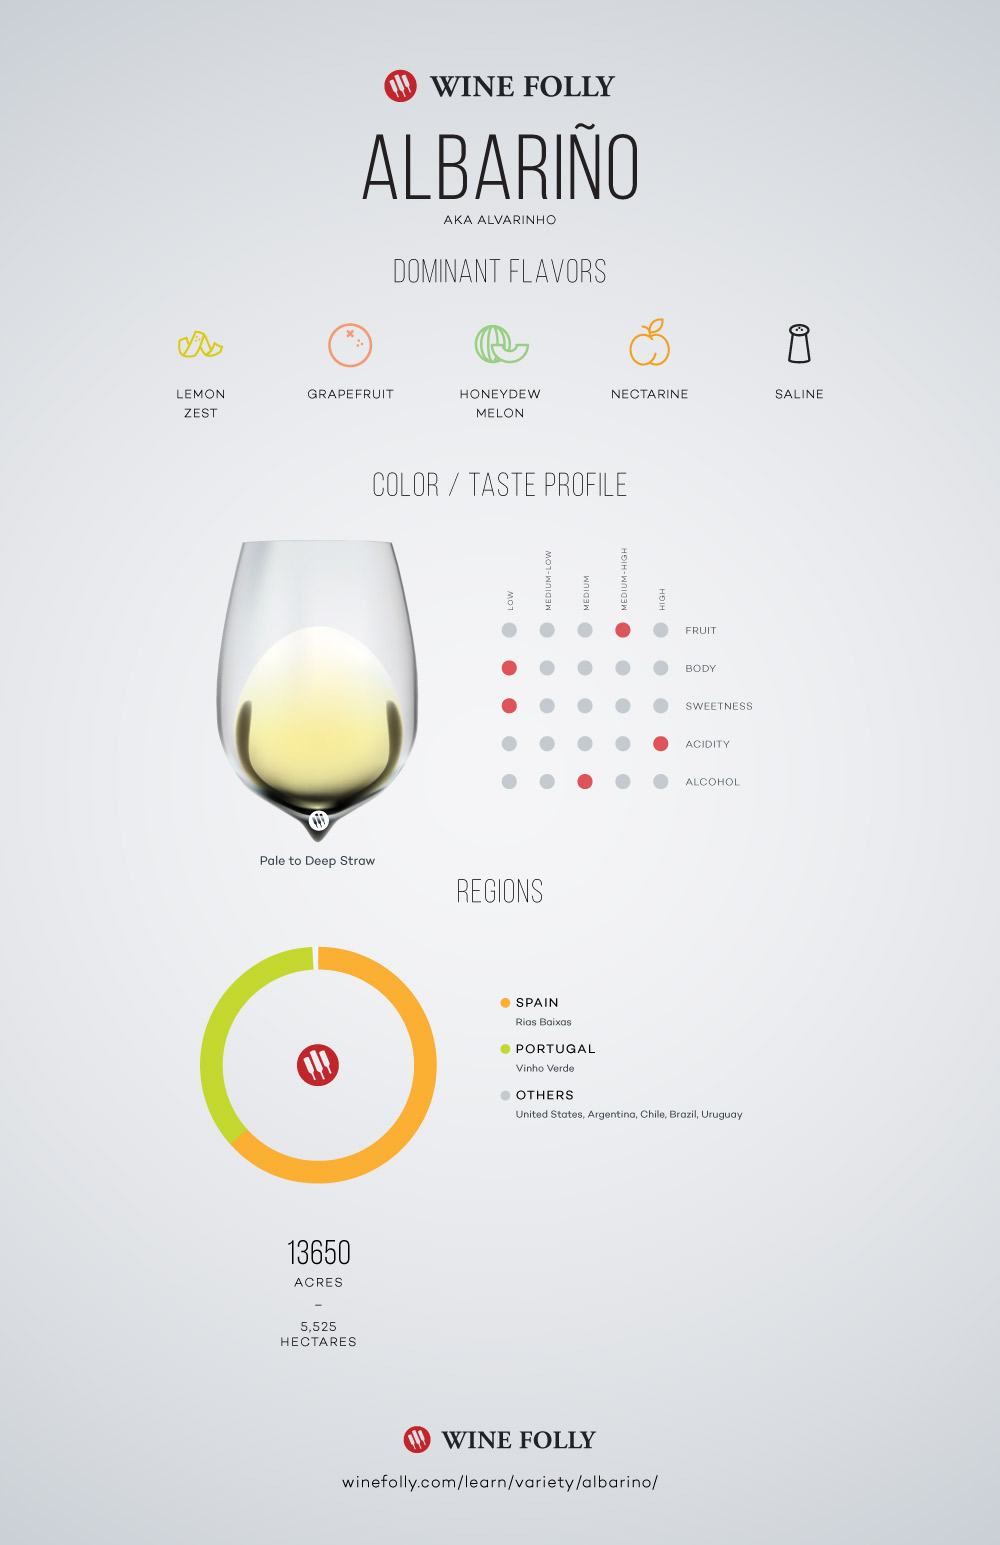 Albarino Tasting Notes, regional distribution and information by Wine Folly